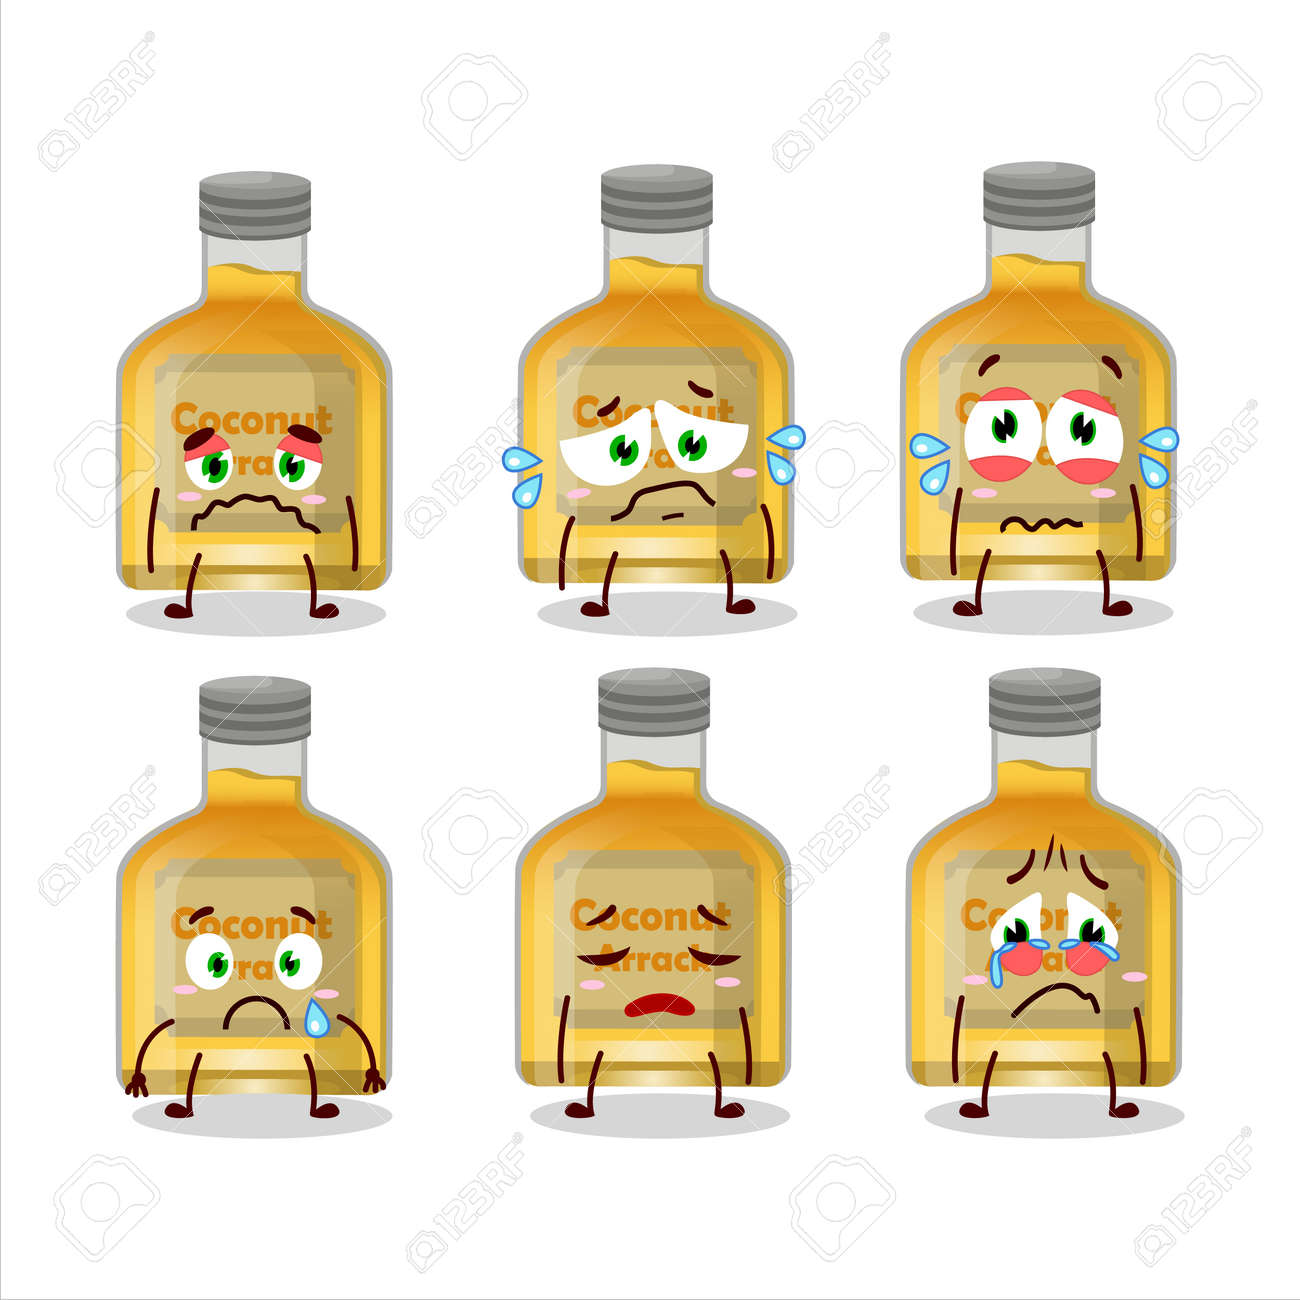 Coconut arrack cartoon character with sad expression - 173228601